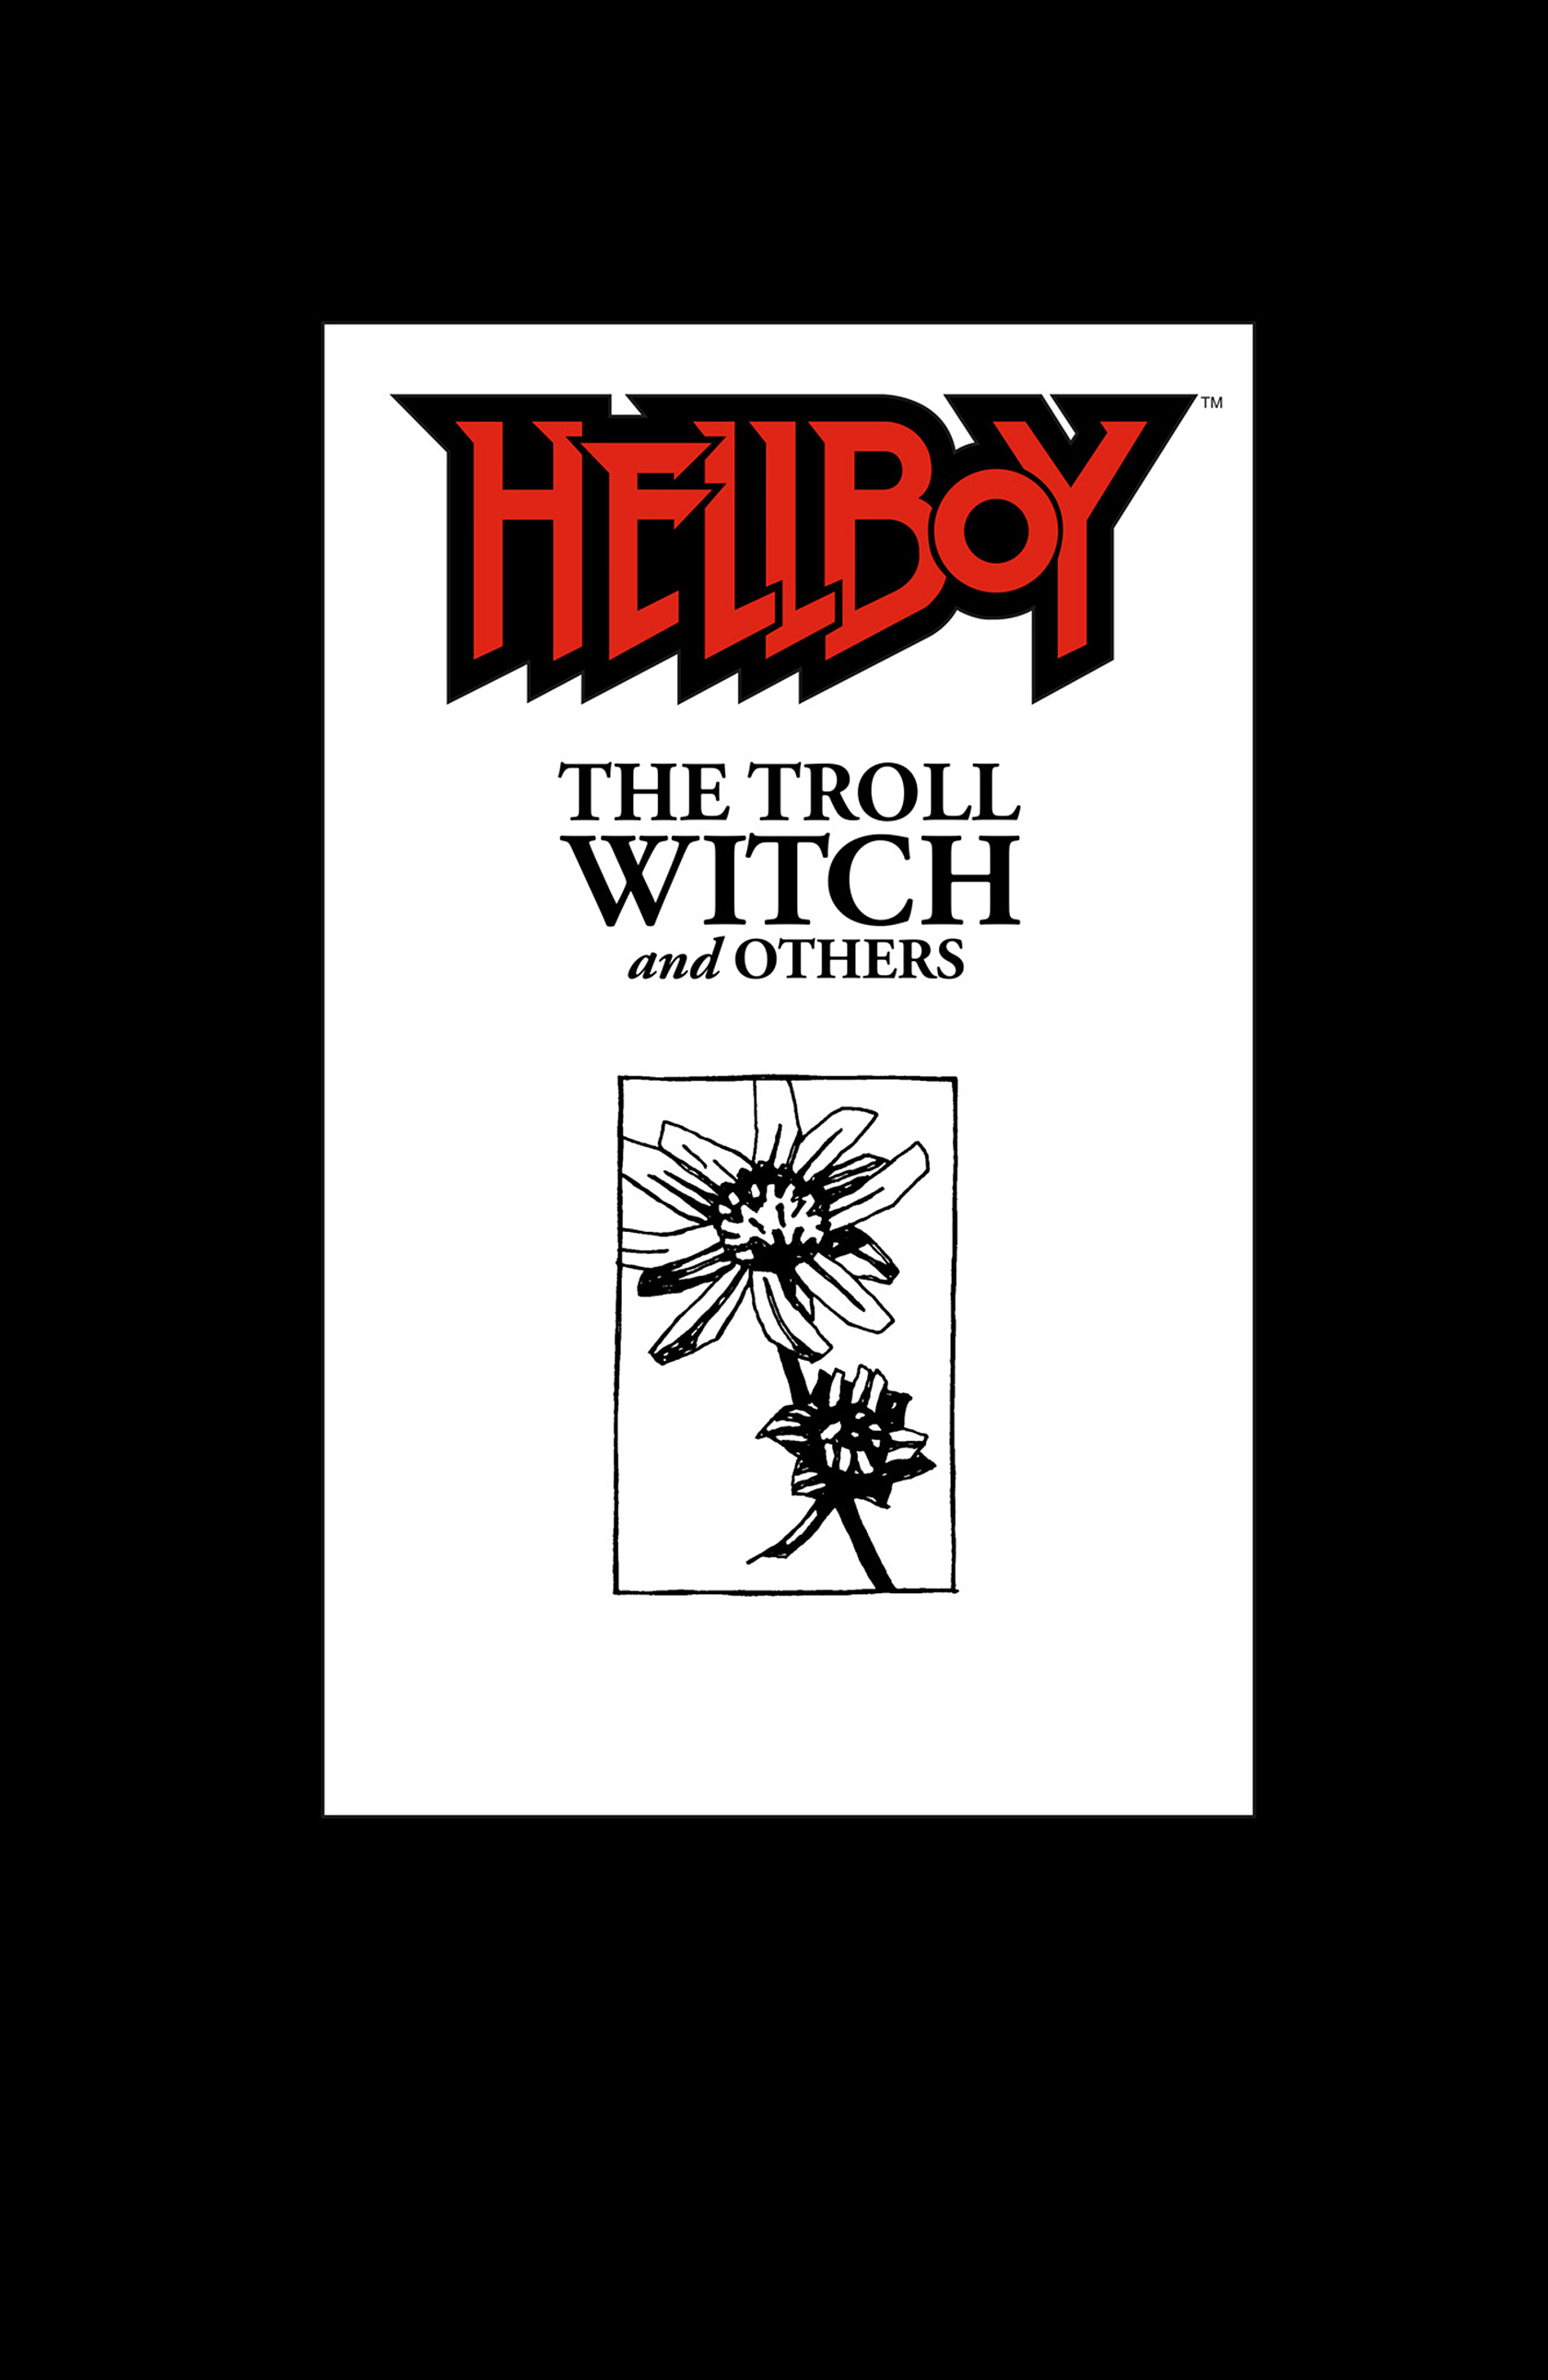 Read online Hellboy: The Troll Witch and Others comic -  Issue # TPB - 2